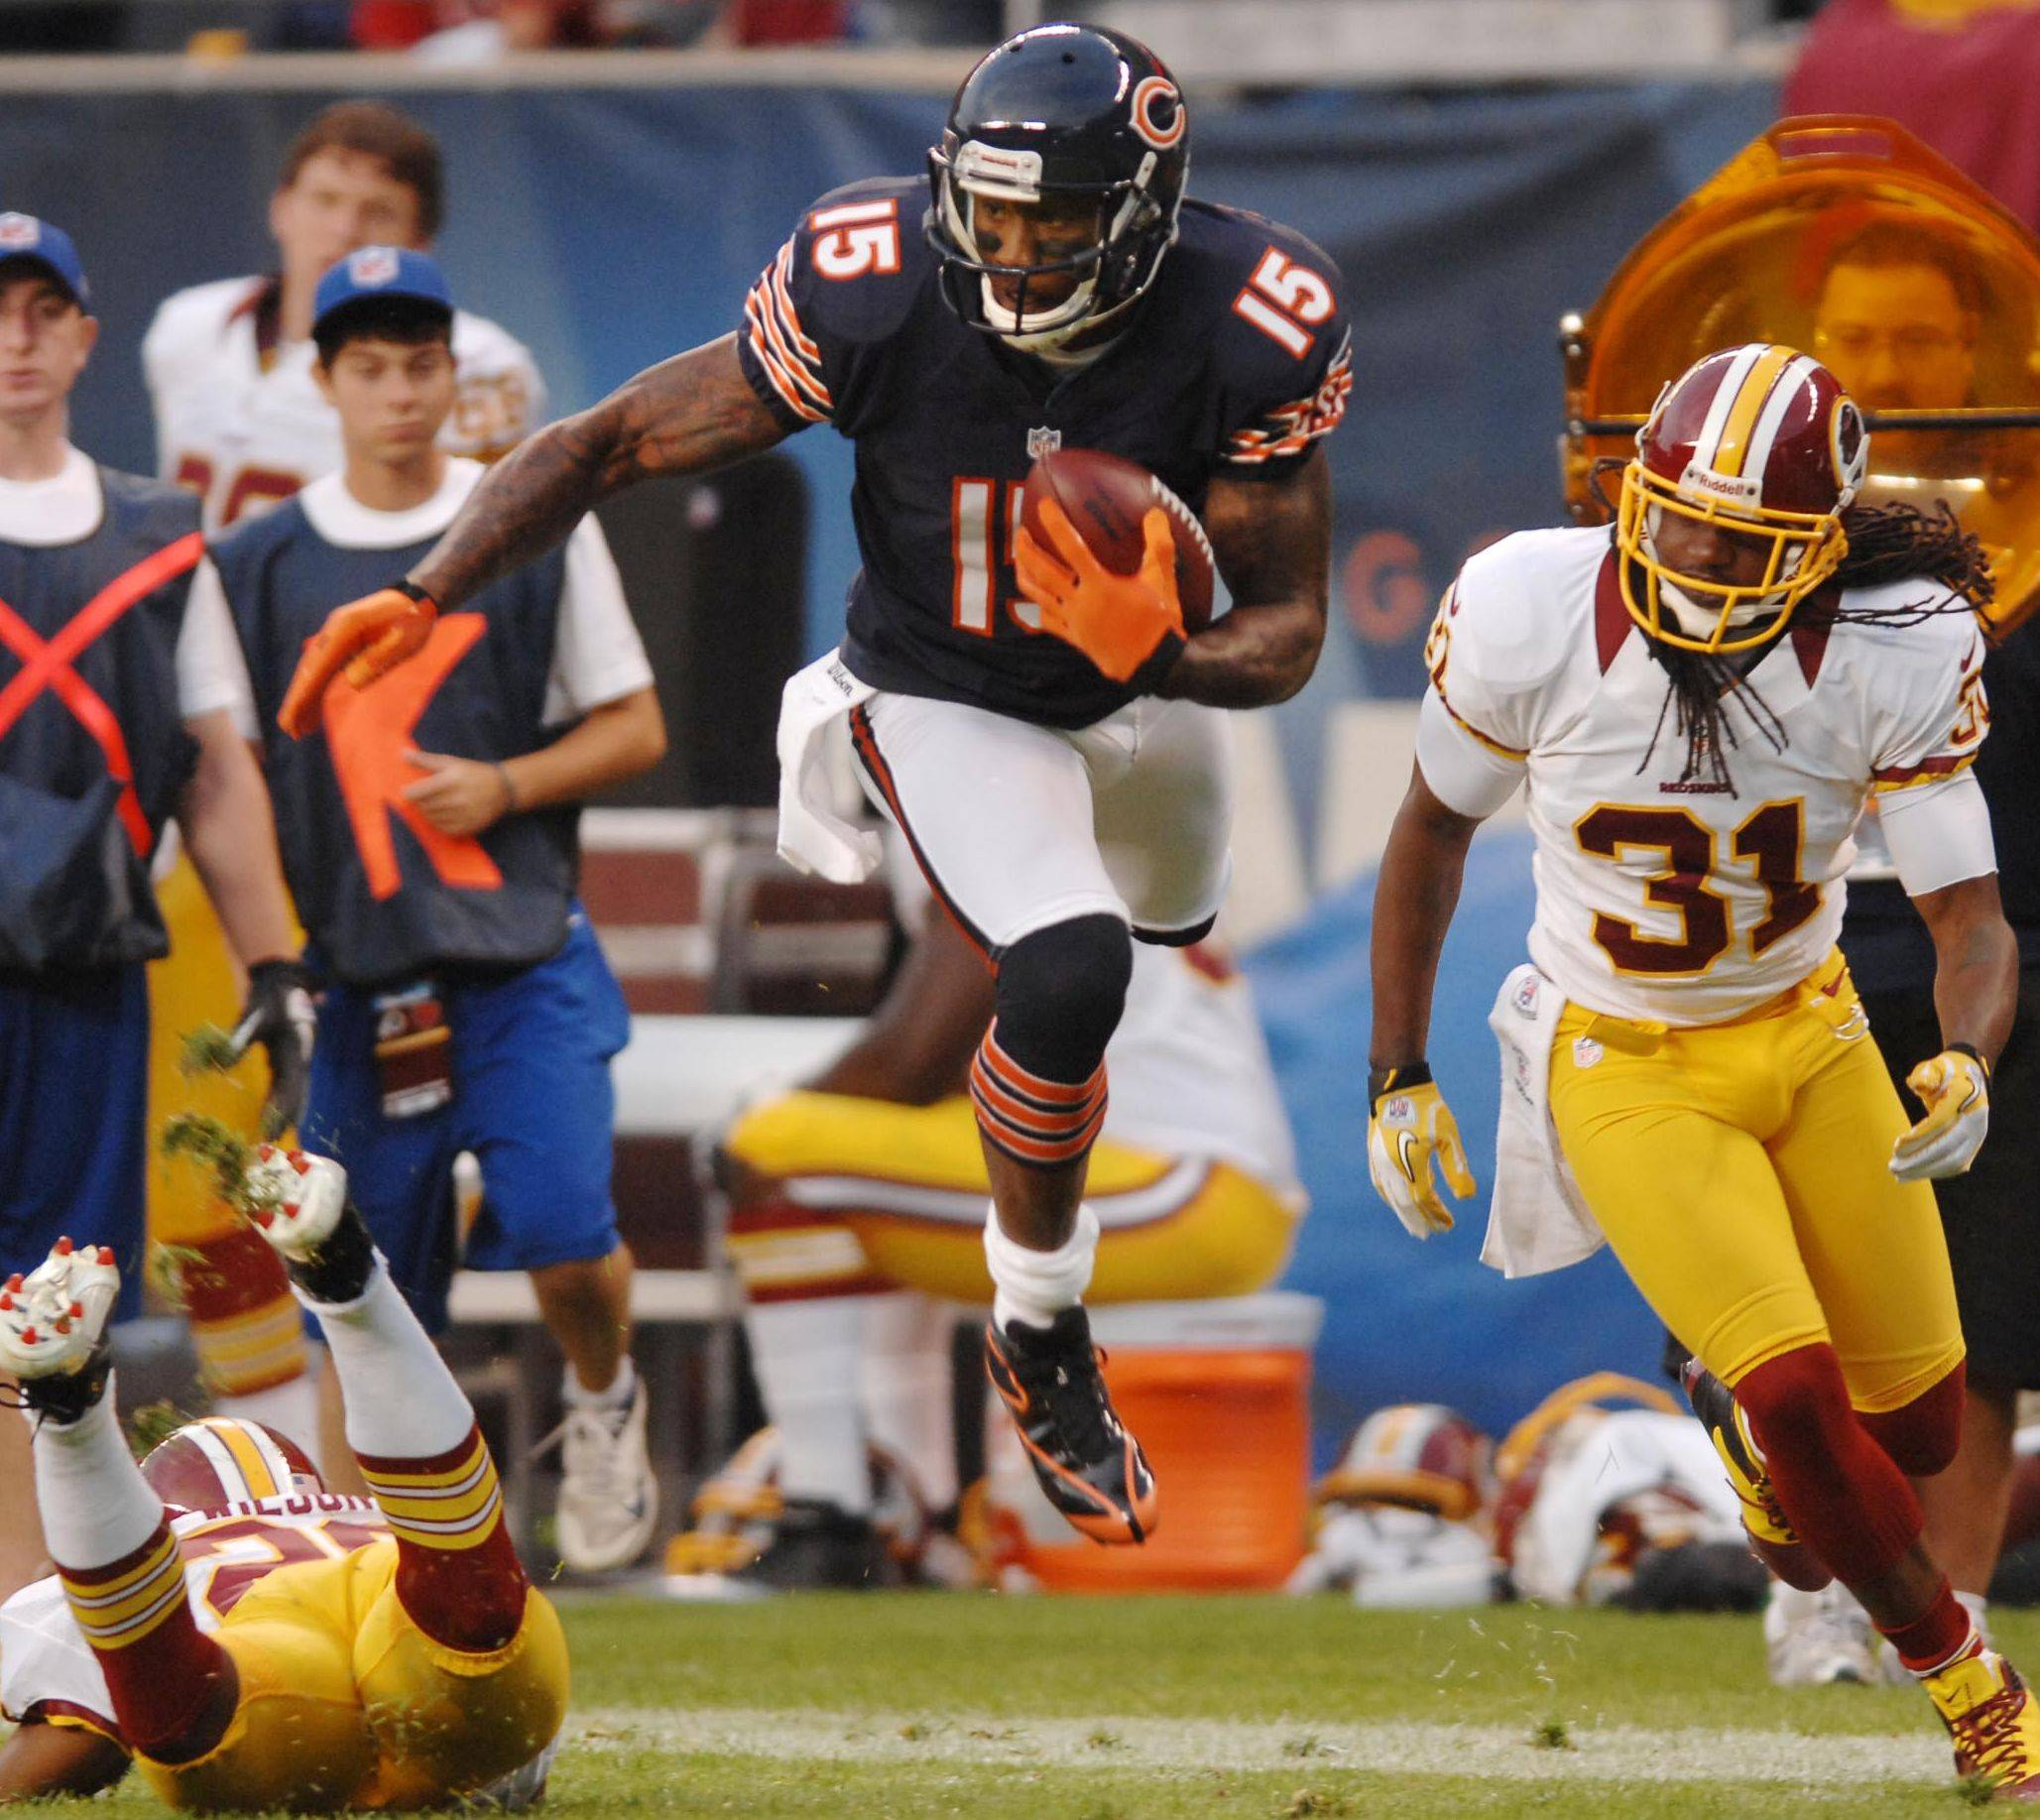 The addition of wide receiver Brandon Marshall as a key target for quarterback Jay Cutler is just one of the many reasons to like the Bears' chances, says Mike North.